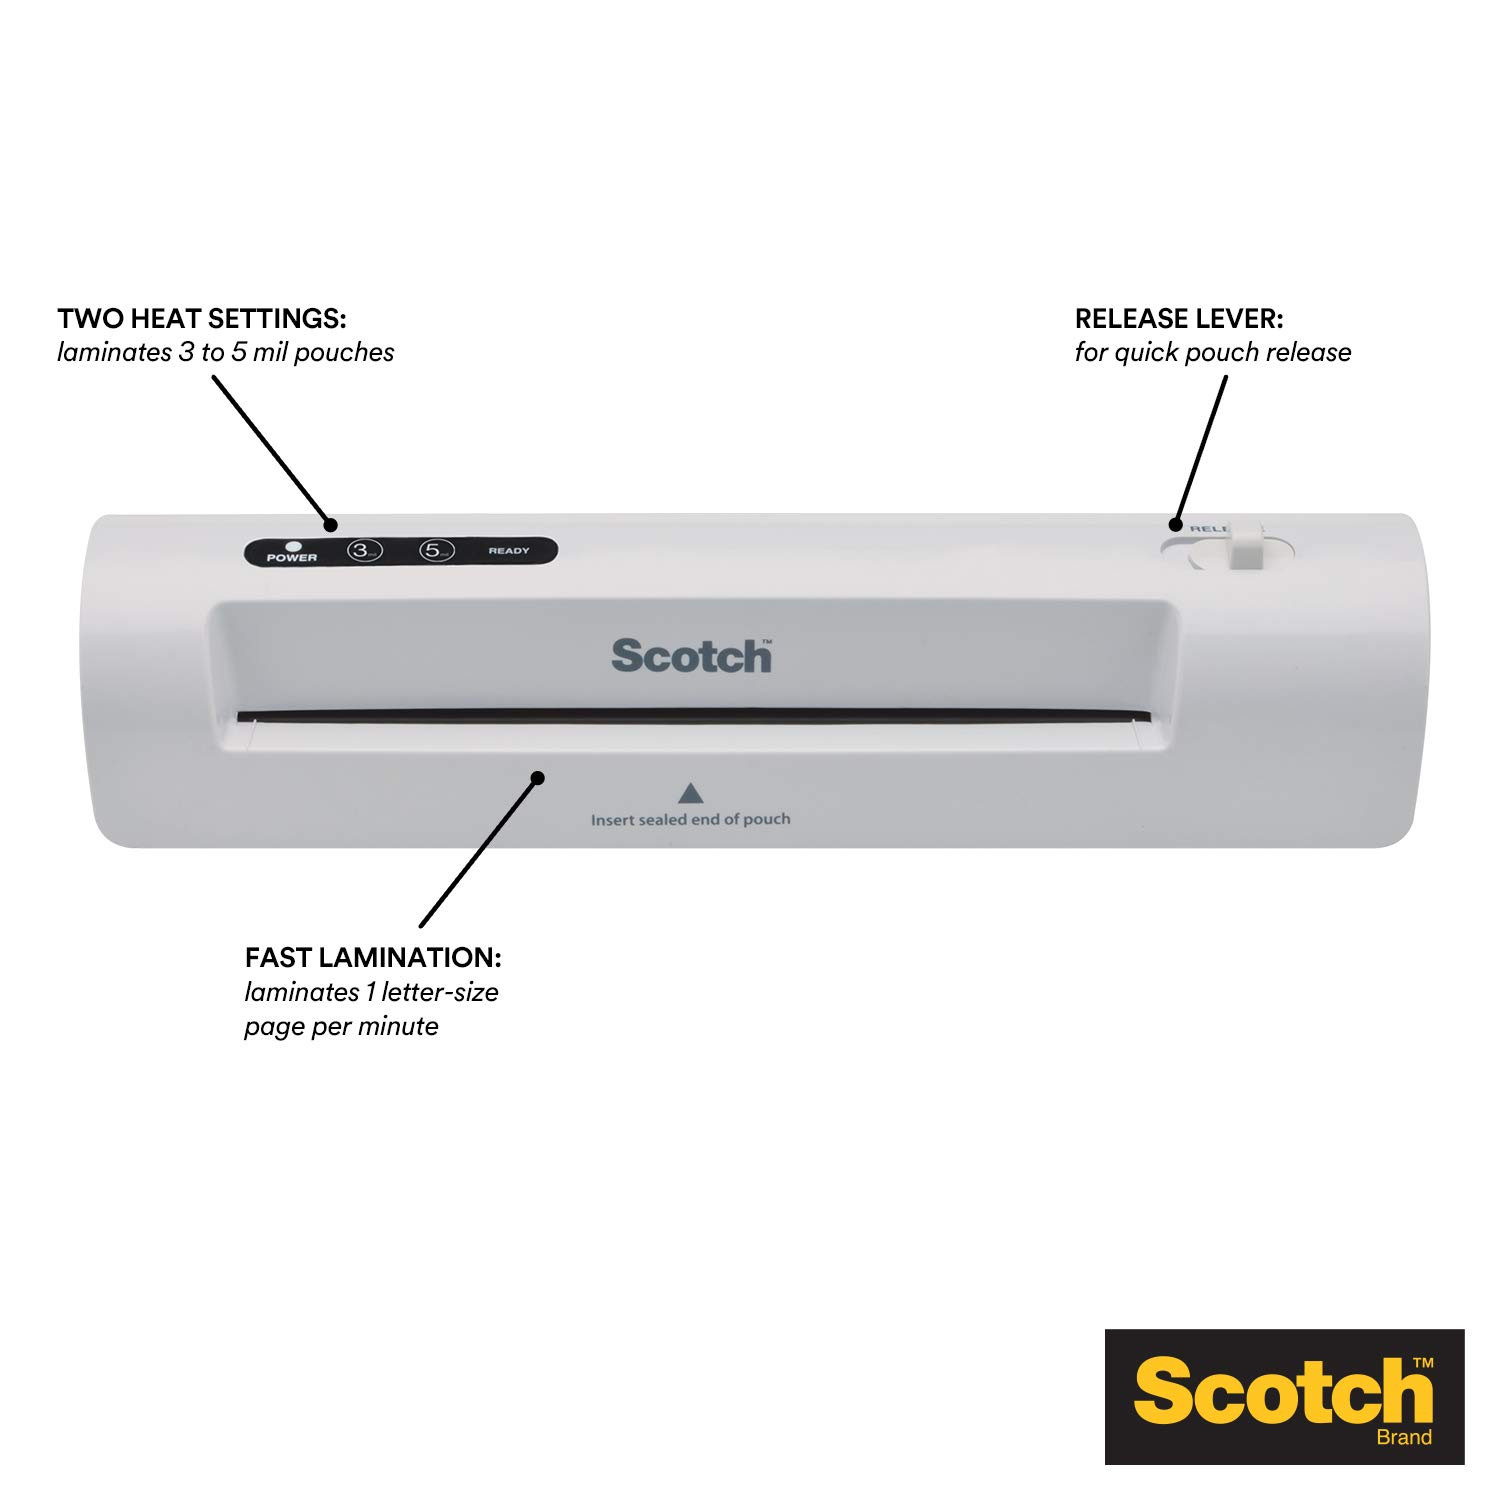 Scotch Thermal Laminator 2 roller system TL901 15.5 x 6.75 x 3.75- Inches Silver//Black